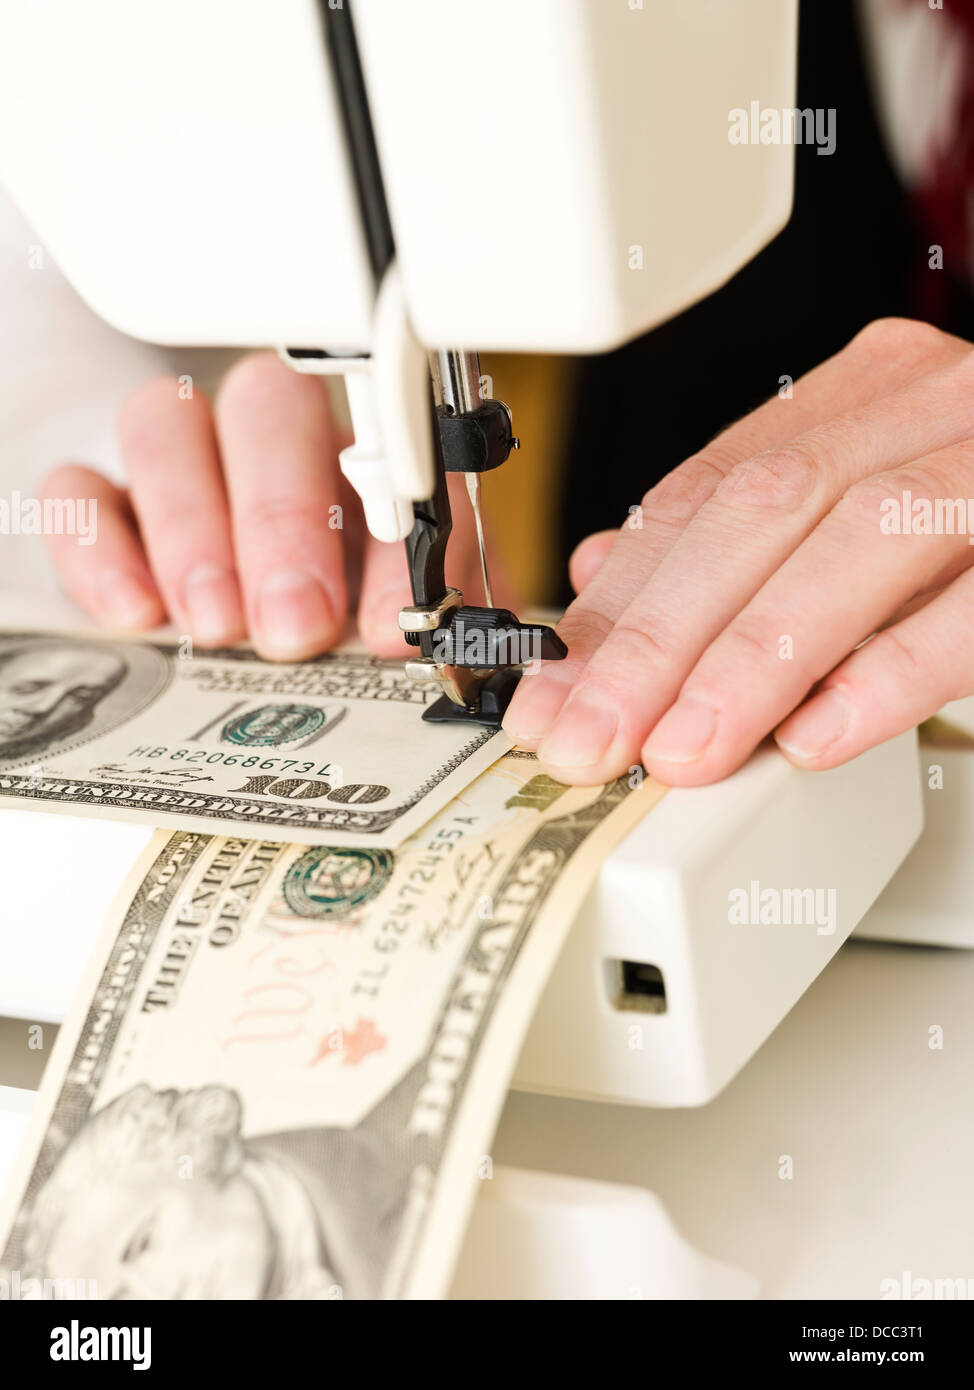 Sewing a dollar bank note Stock Photo